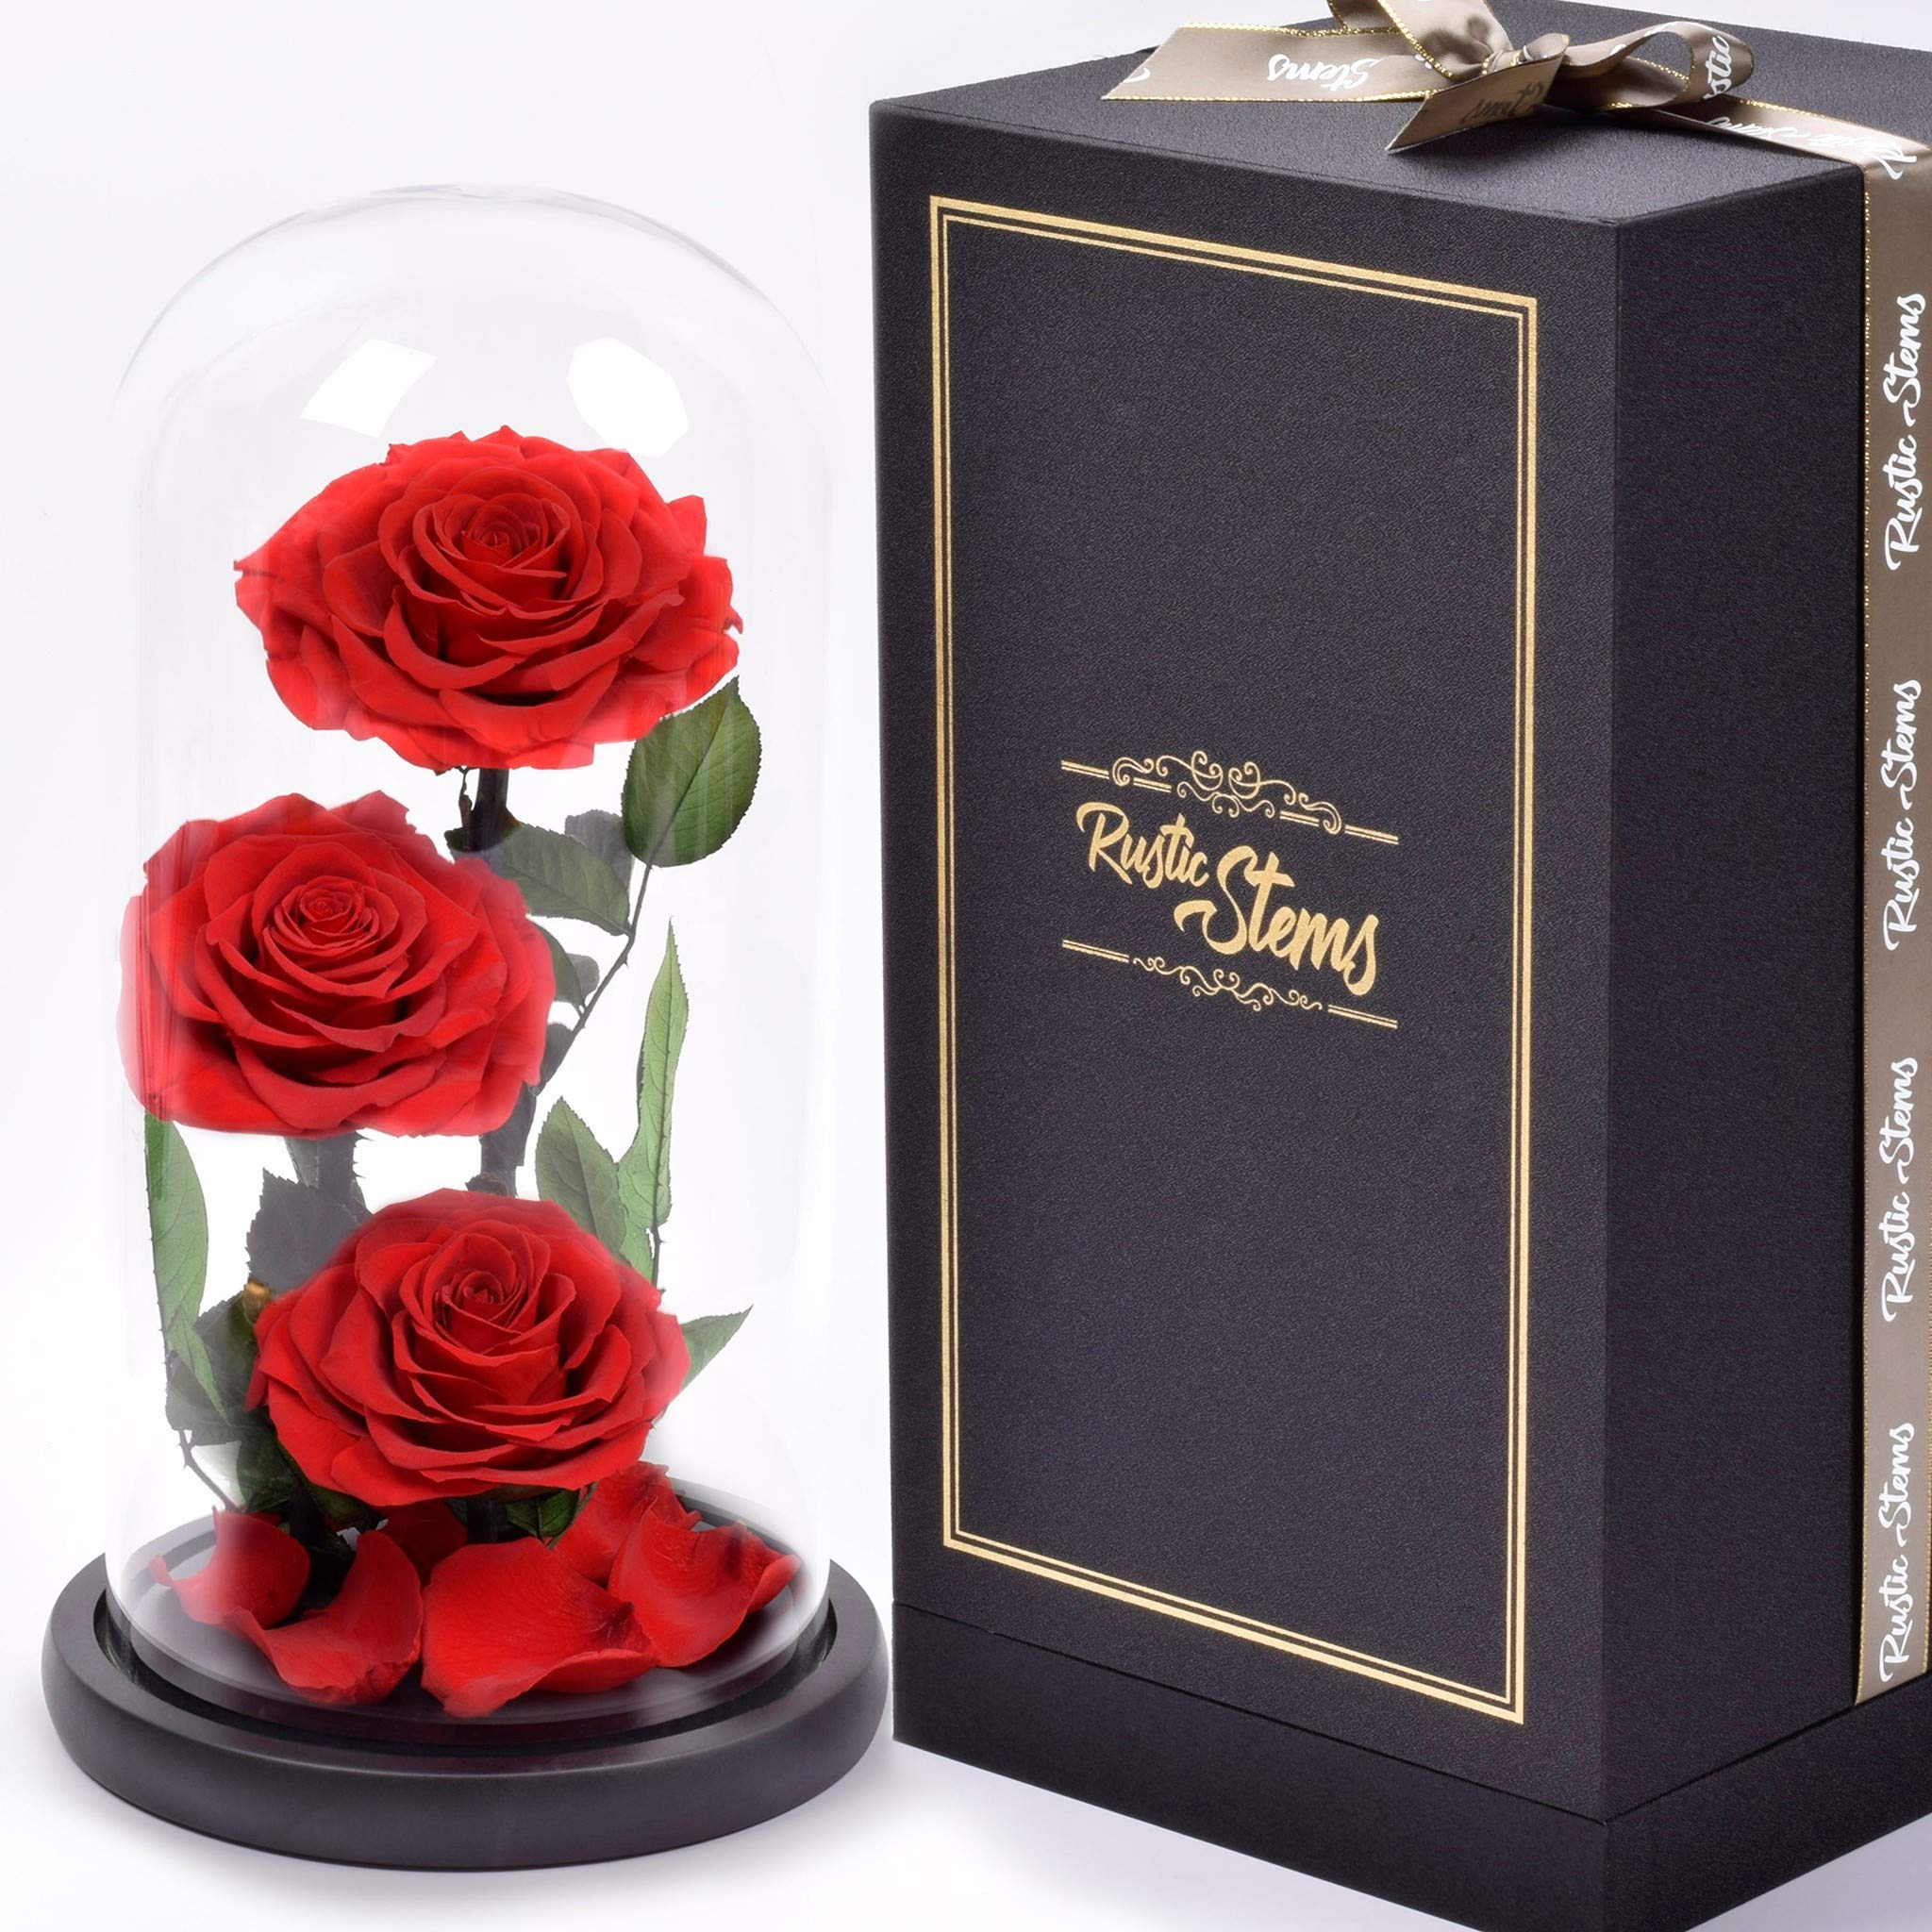 RUSTIC STEMS – Luxury Preserved Rose Real Fresh Flower Forever Beauty and The Beast Eternal in Glass Dome Handmade Gifts for Mom Women Wife Girlfriend Birthday Anniversary (Luxury Red)